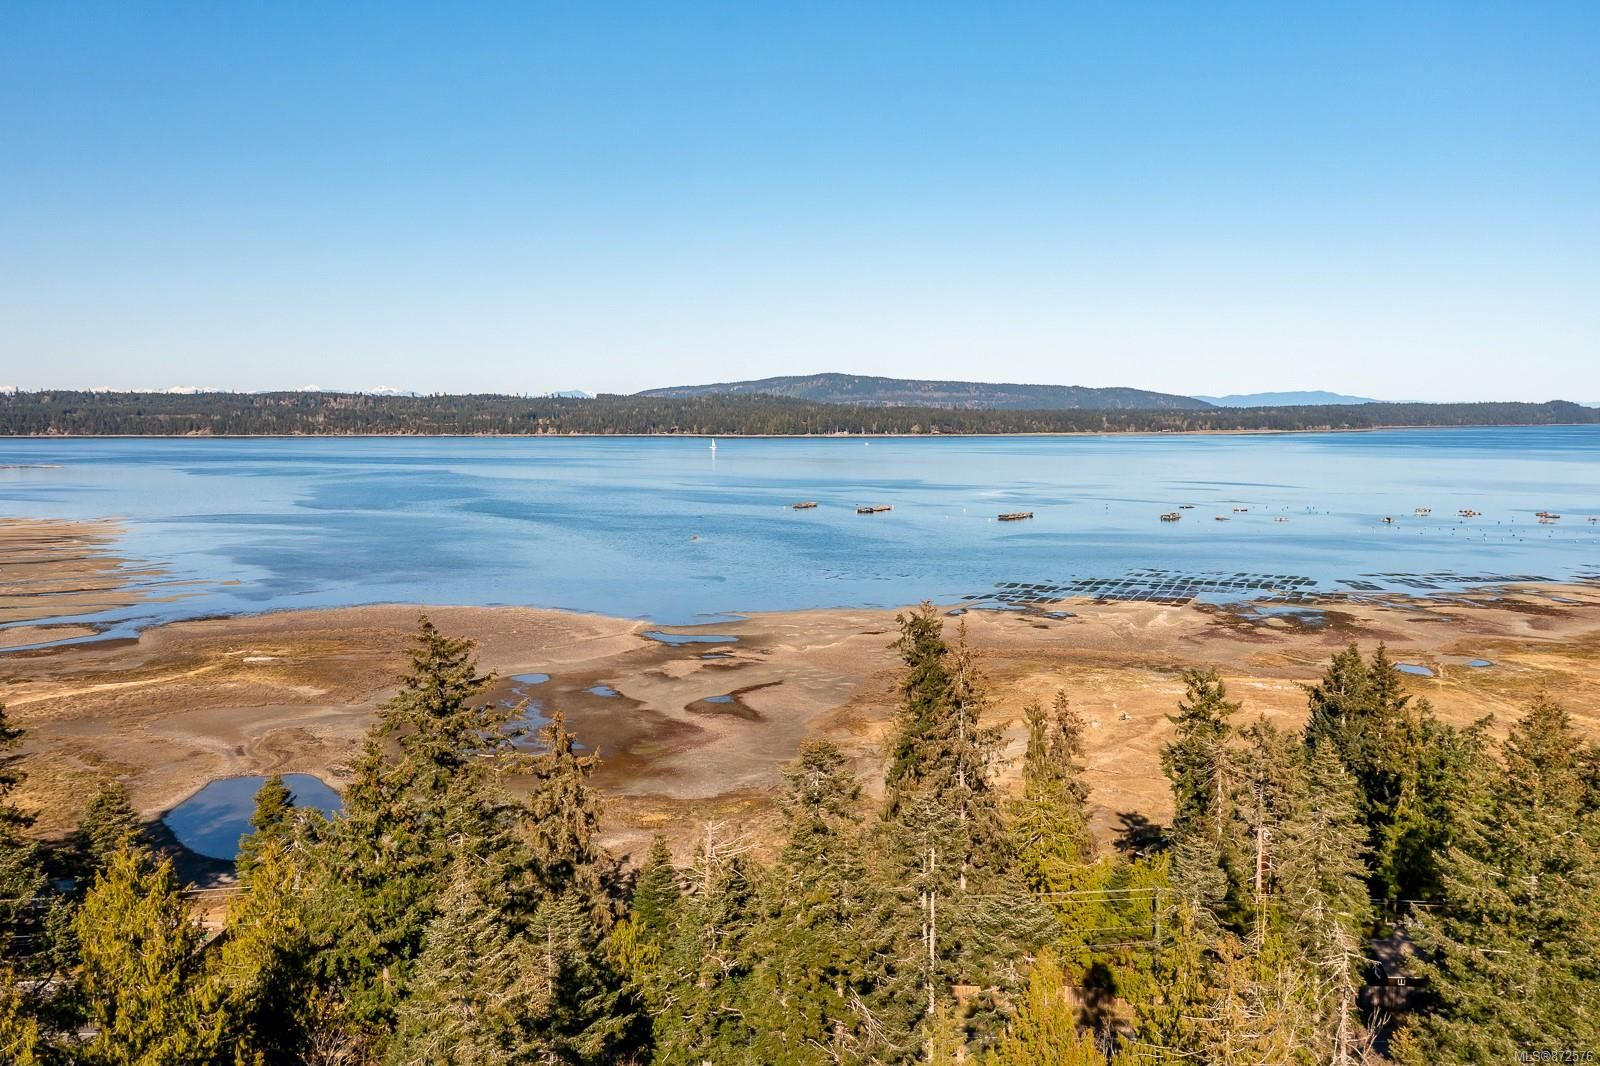 Main Photo: 8132 Macartney Dr in : CV Union Bay/Fanny Bay House for sale (Comox Valley)  : MLS®# 872576